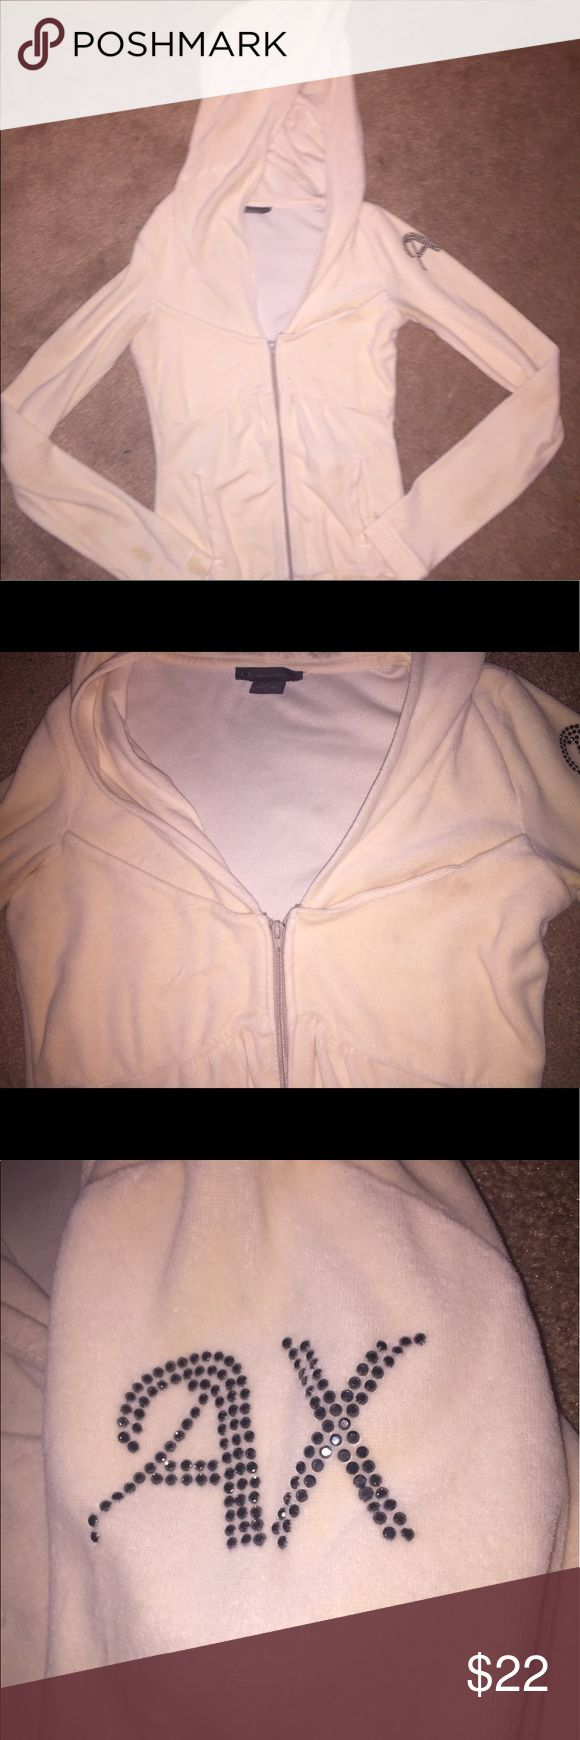 """Armani Exchange babydoll zip up jacket Armani Exchange babydoll style zip up jacket with fuzzy cloth-like material. Has AX on left arm in dark gray rhinestones. Two small stains my the wrist that I don't recall specifically trying to """"get out"""" but I will upon request. A/X Armani Exchange Tops Sweatshirts & Hoodies"""